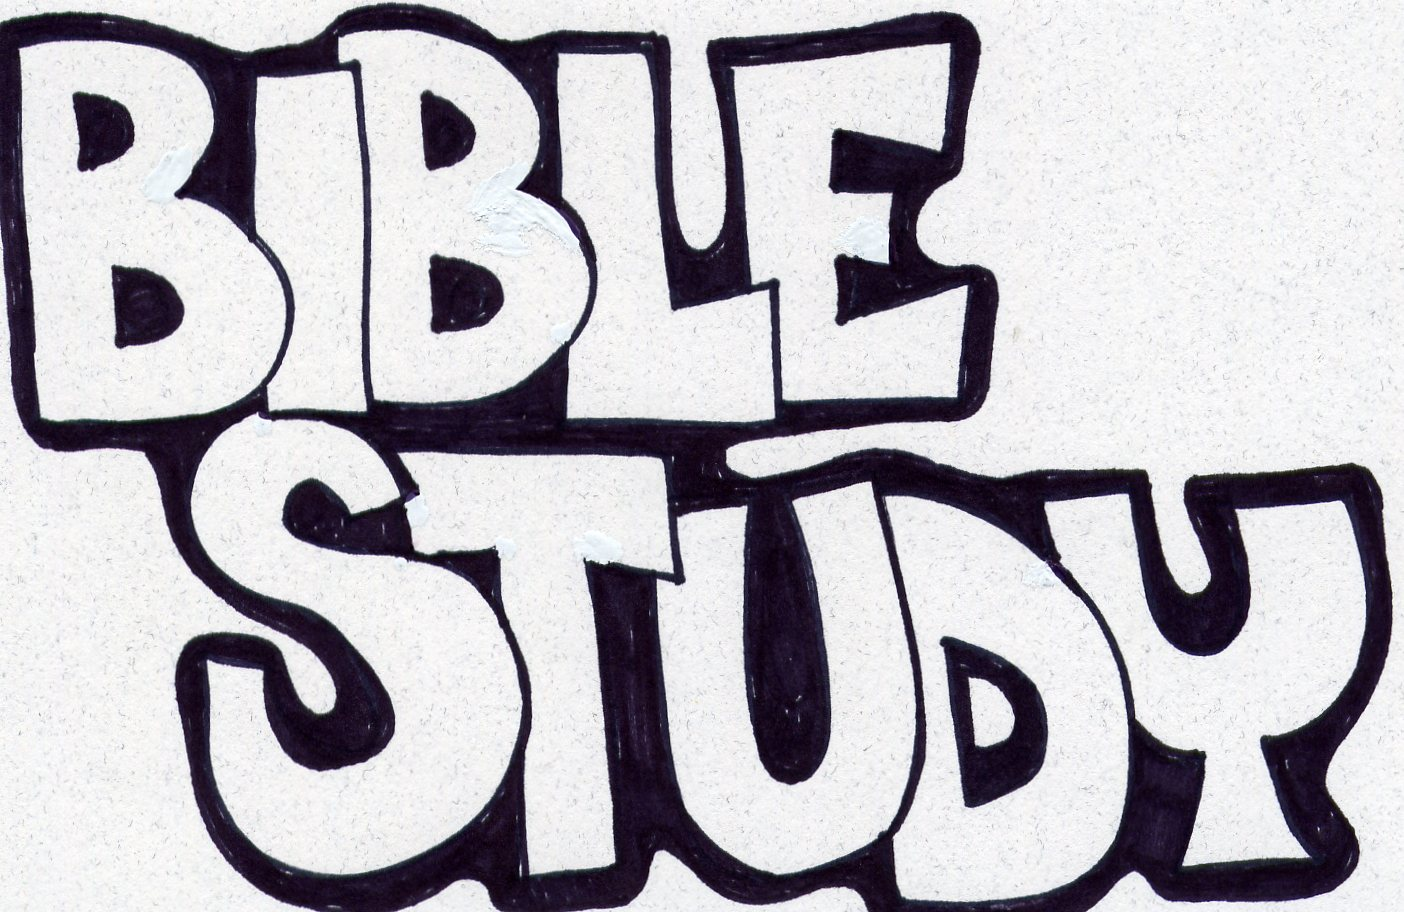 Bible clipart youth bible study. The pentecostal mission rev